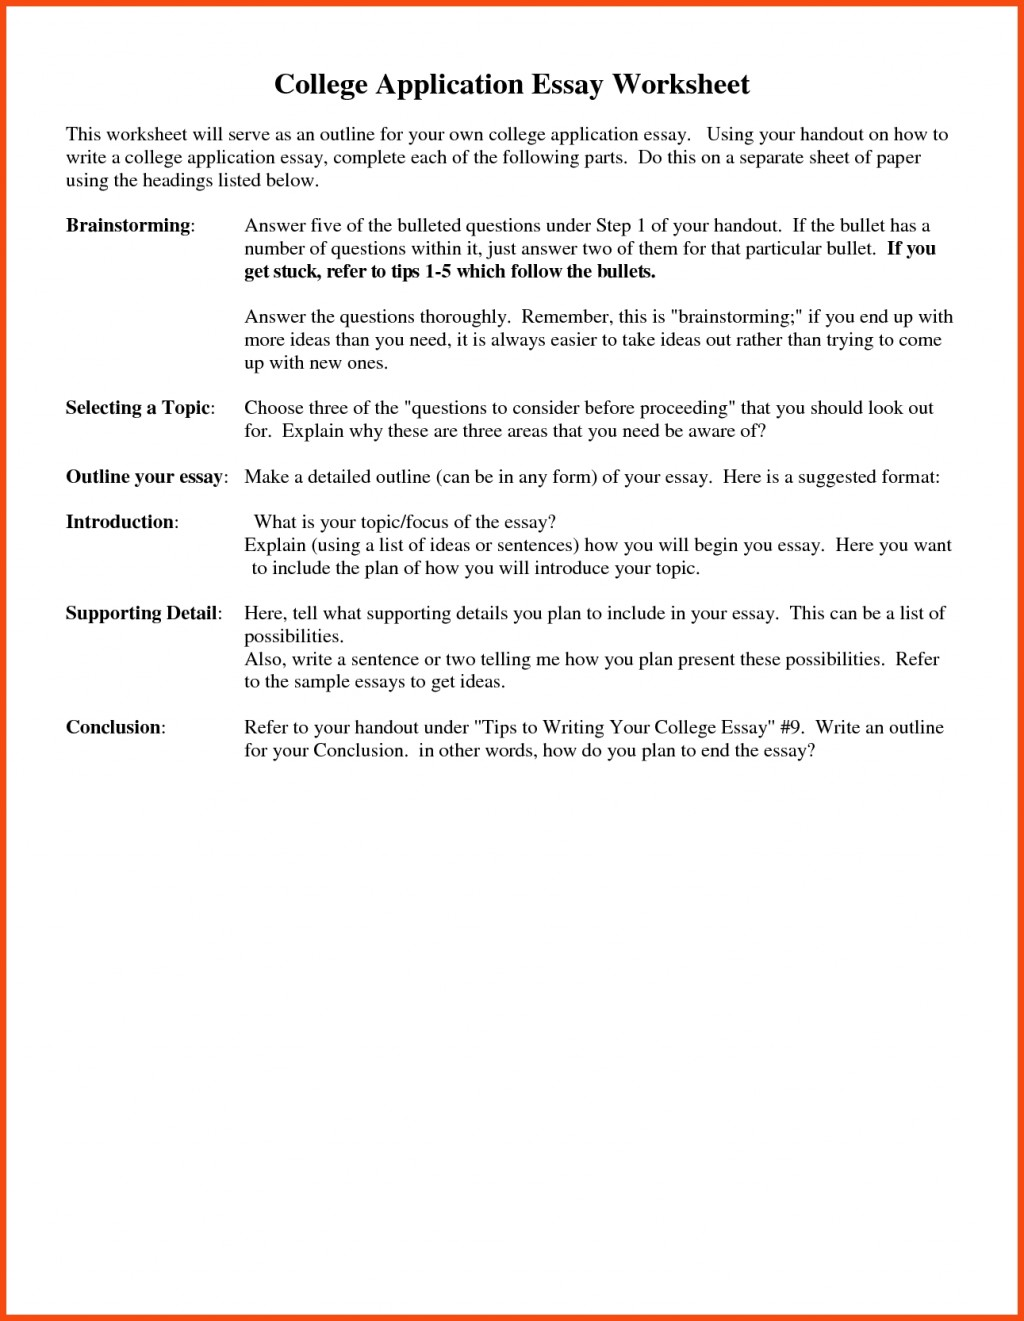 019 How To Format College Application Essay Dolap Magnetband Co For Ous Awesome A Scholarship Your Large